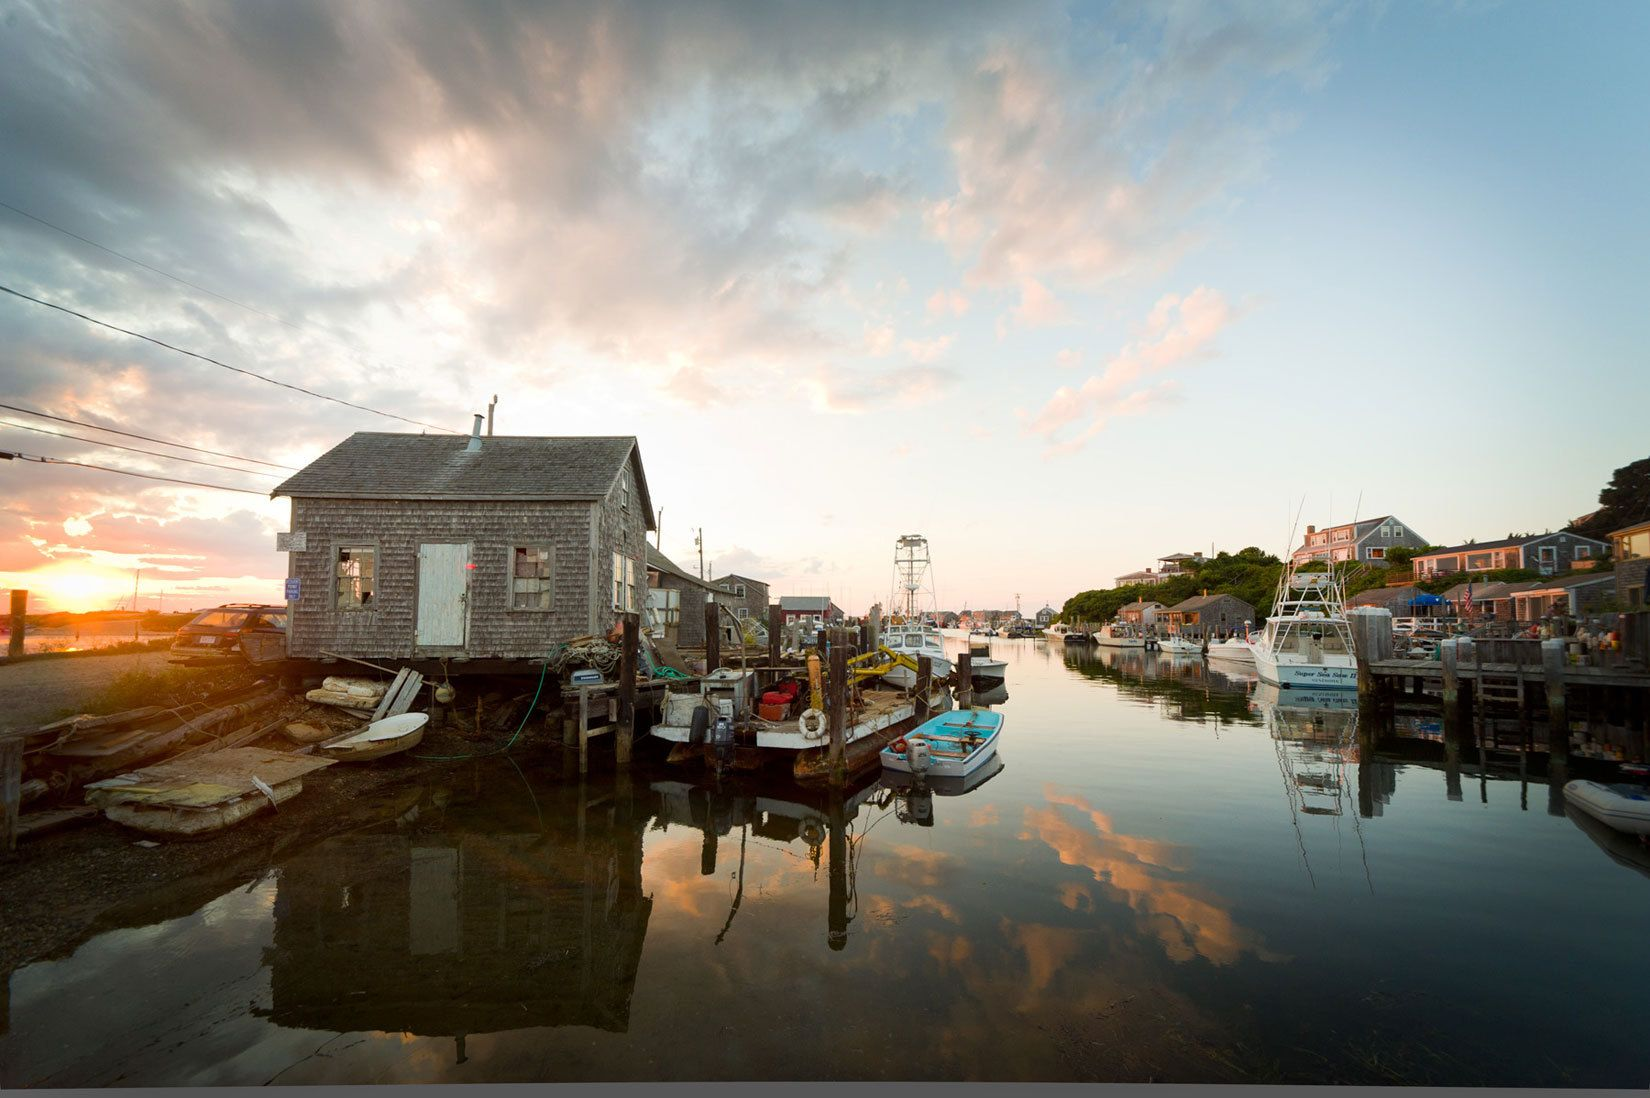 From the porch of The Galley, Menemsha